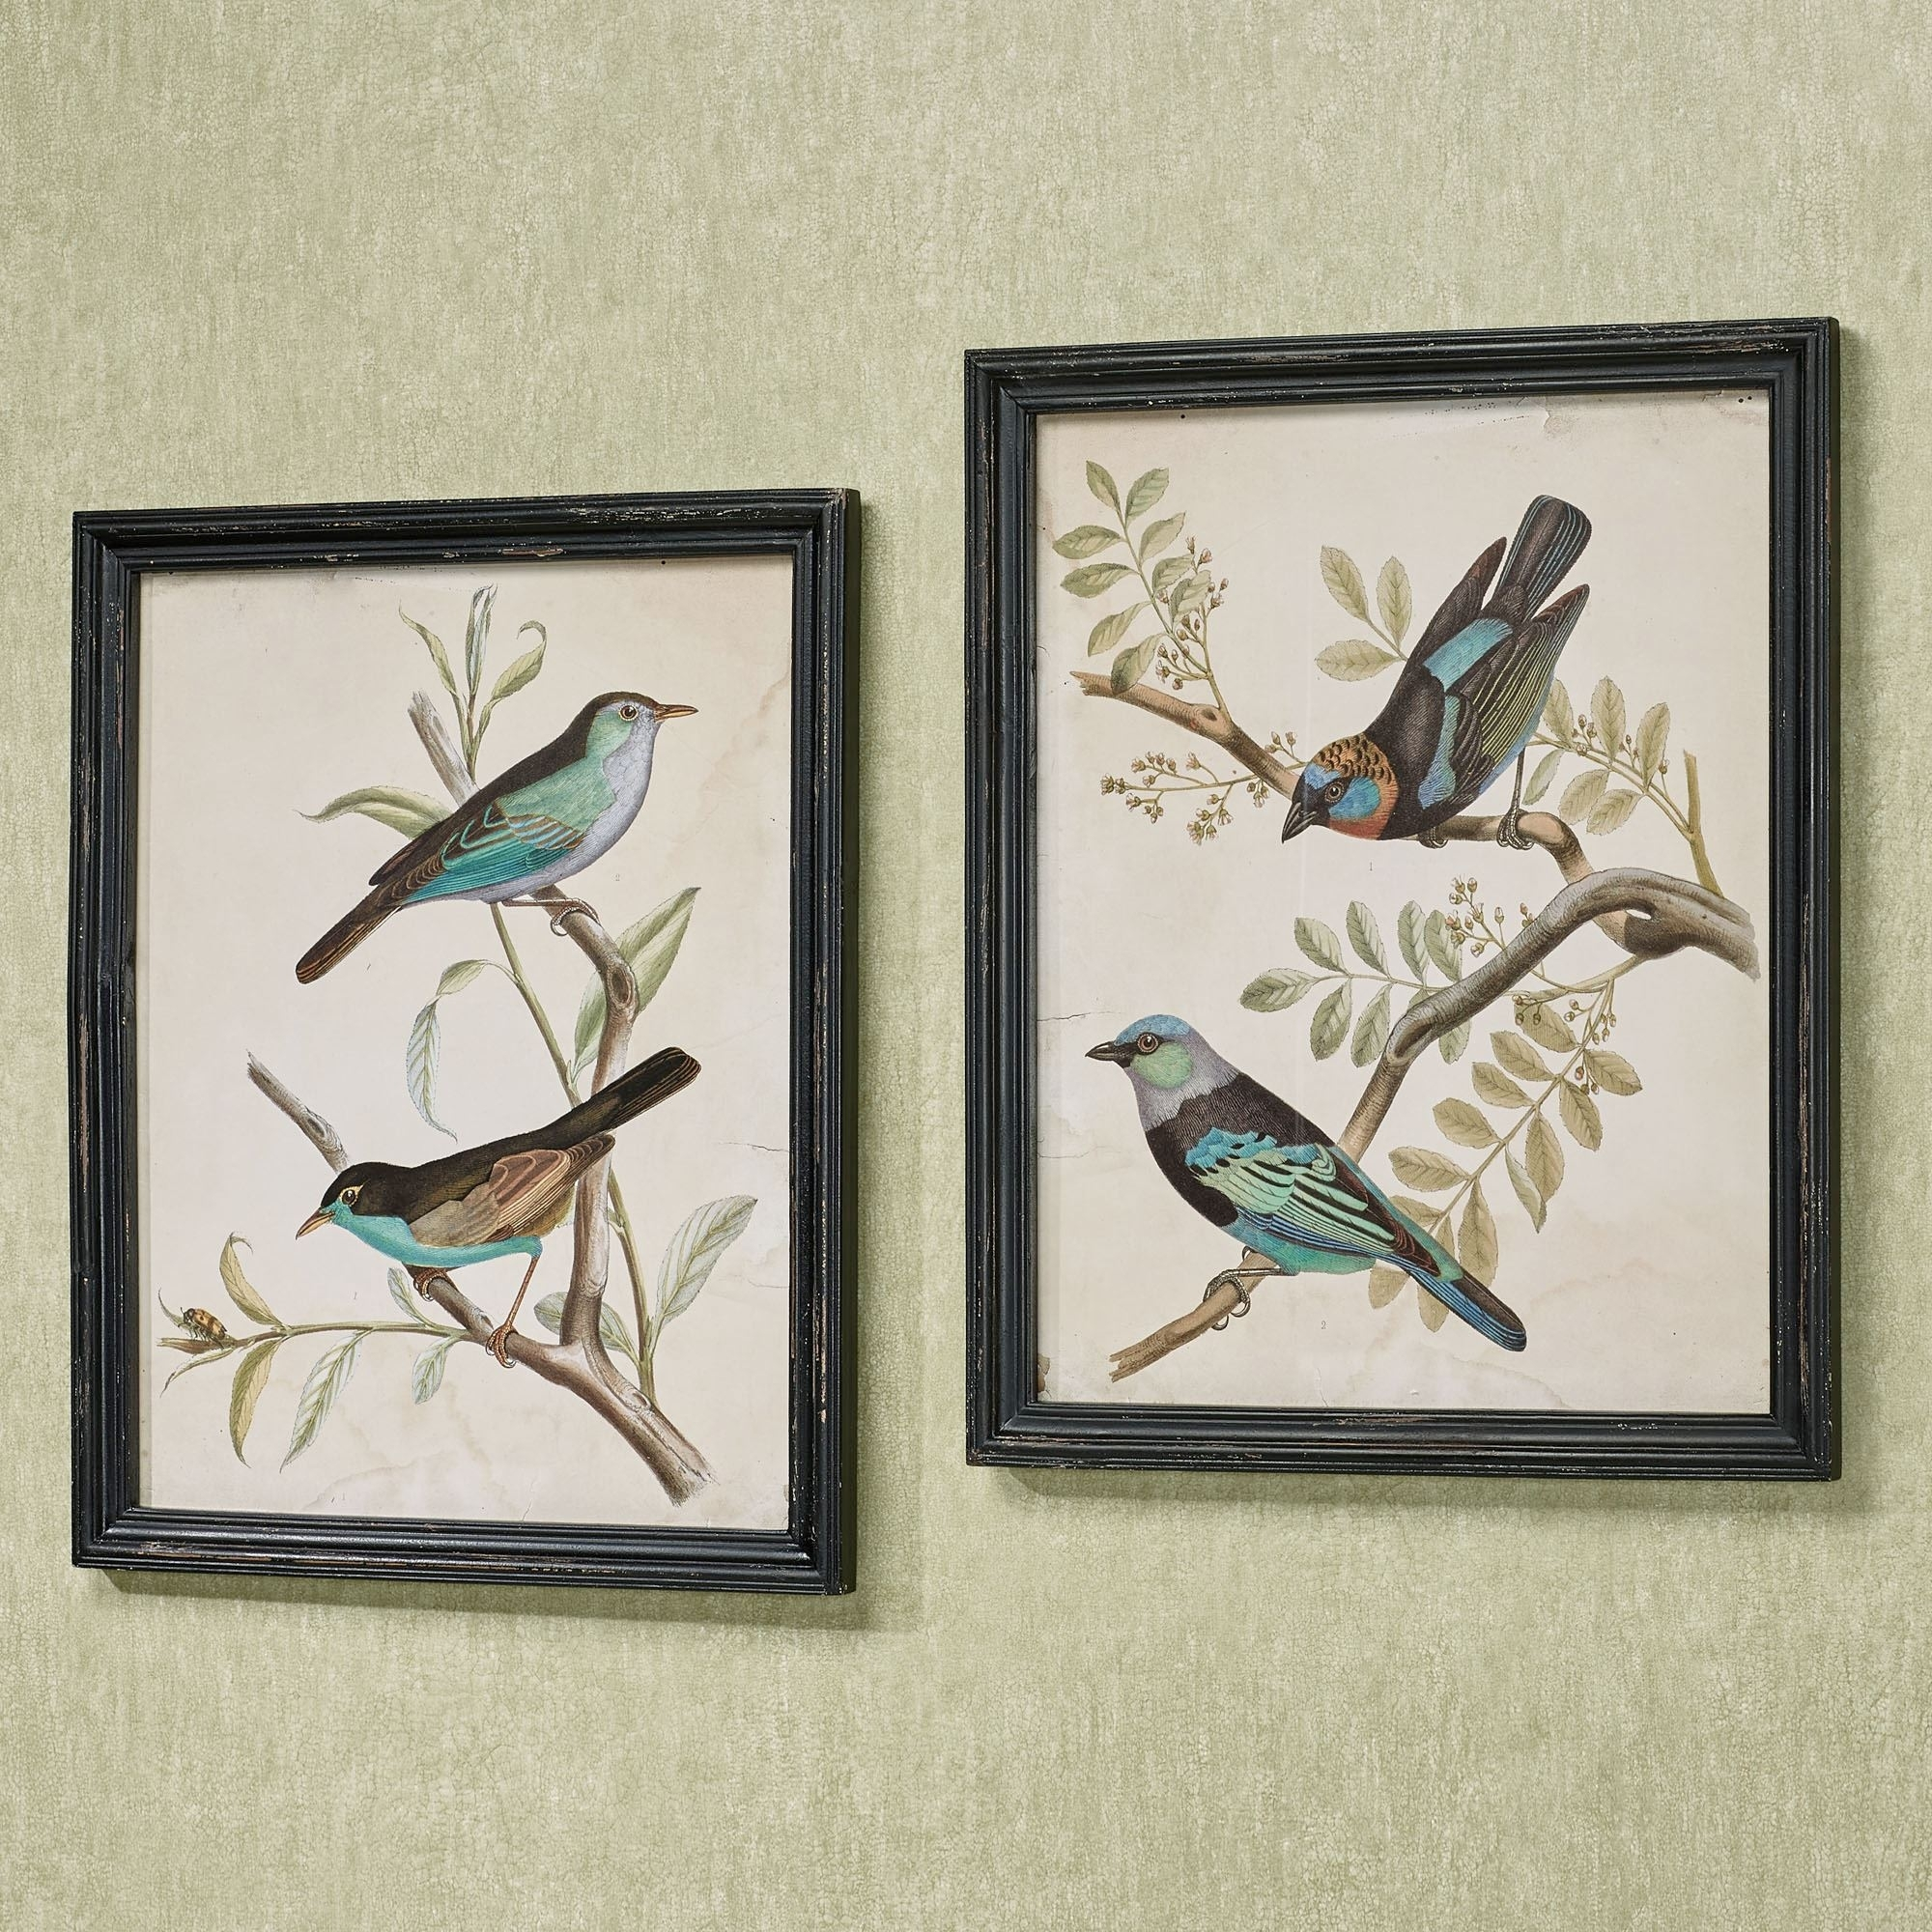 Framed Art Prints | Touch Of Class Pertaining To Most Recently Released Birds Framed Art Prints (View 6 of 15)